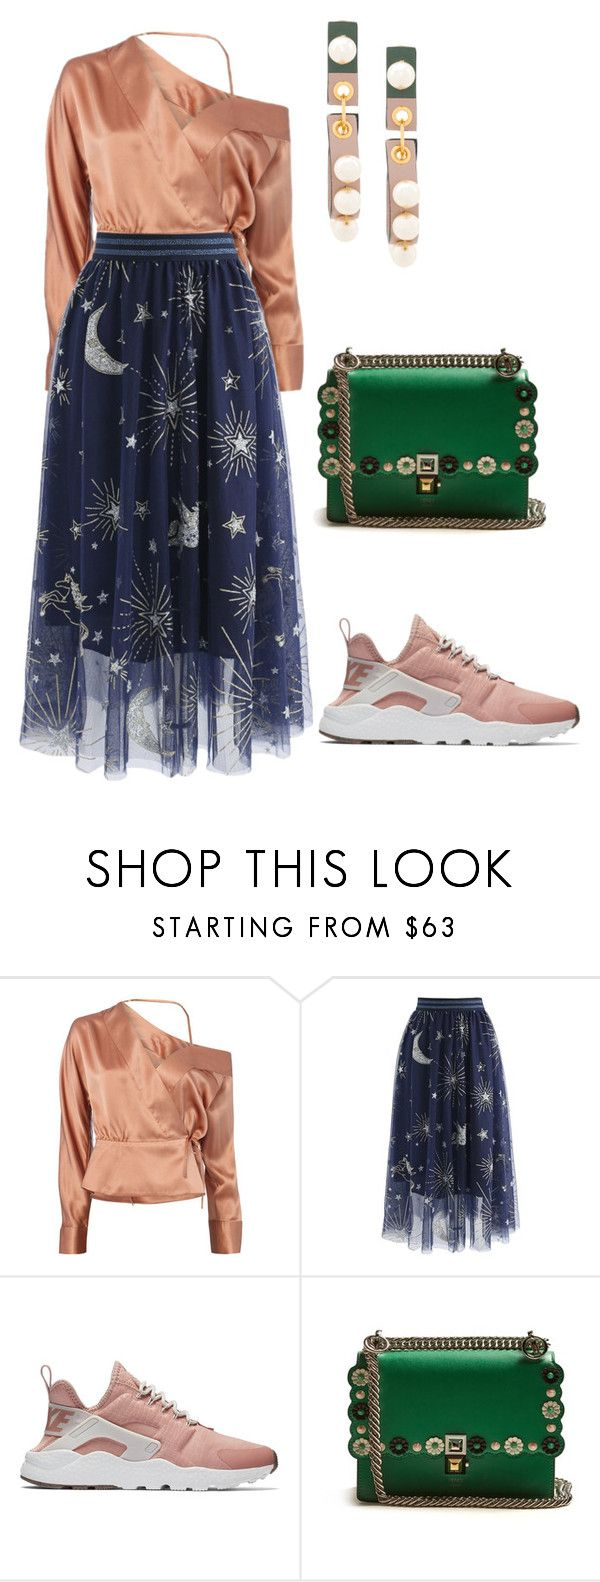 """18"" by explorer-14152771647 ❤ liked on Polyvore featuring Michelle Mason, Chicwish, NIKE, Fendi and Marni"